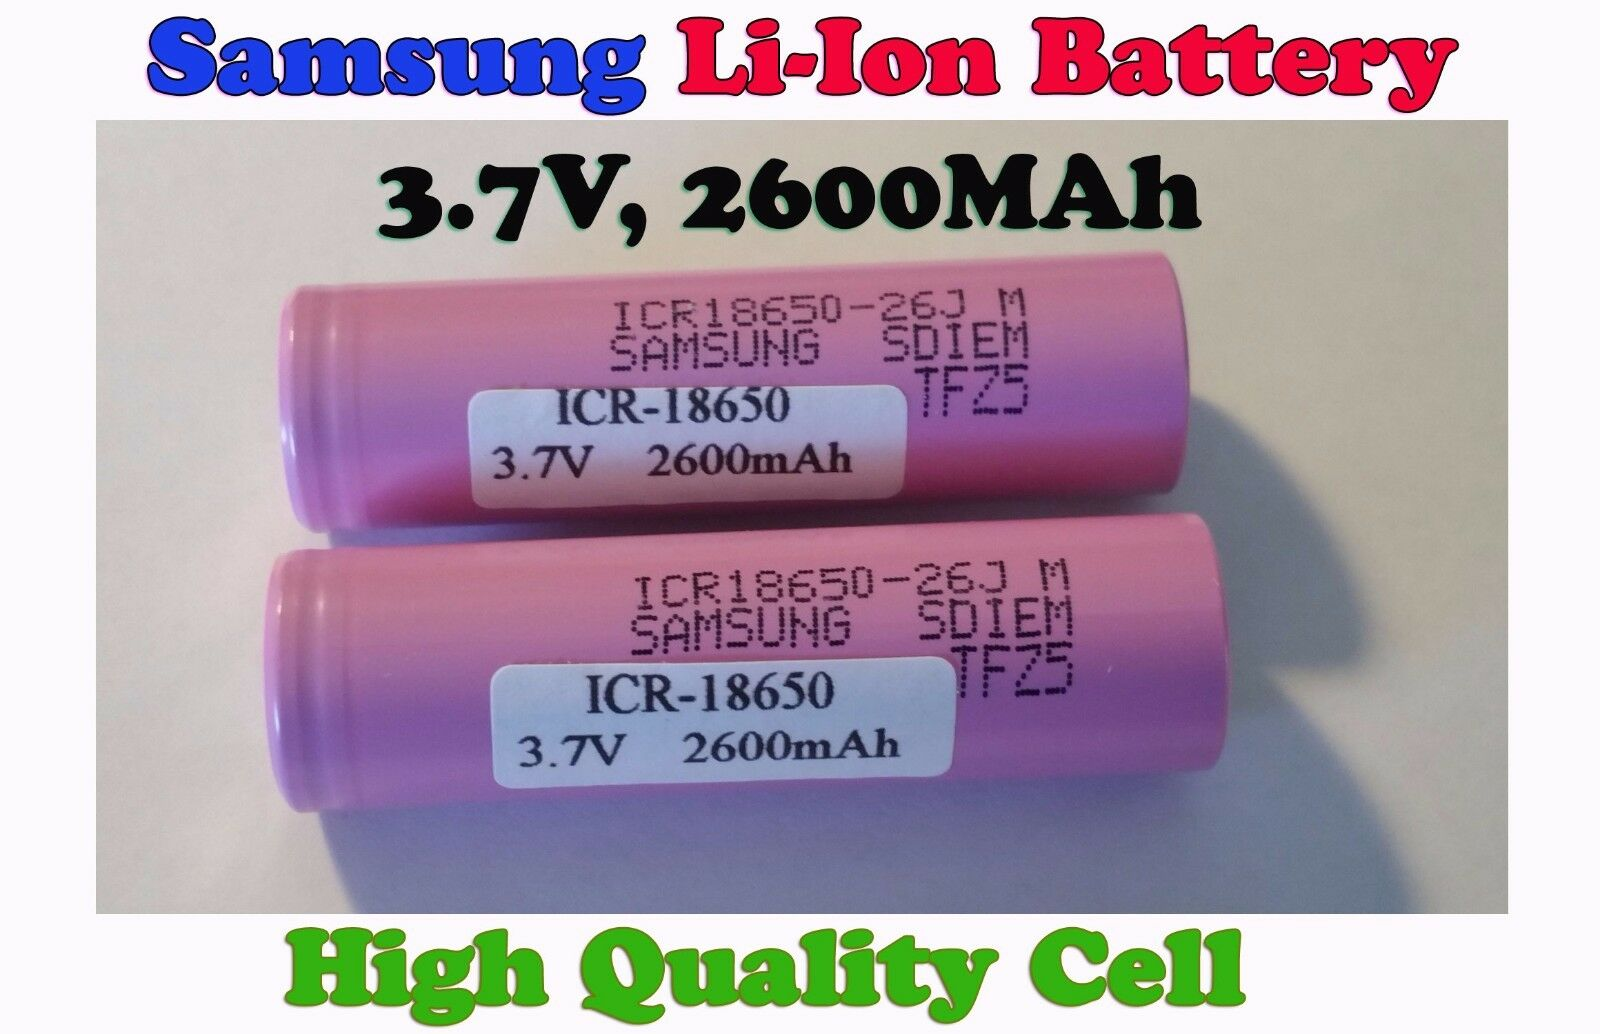 Samsung 2600mah 18650 Li Ion Lithium Battery Power Tool